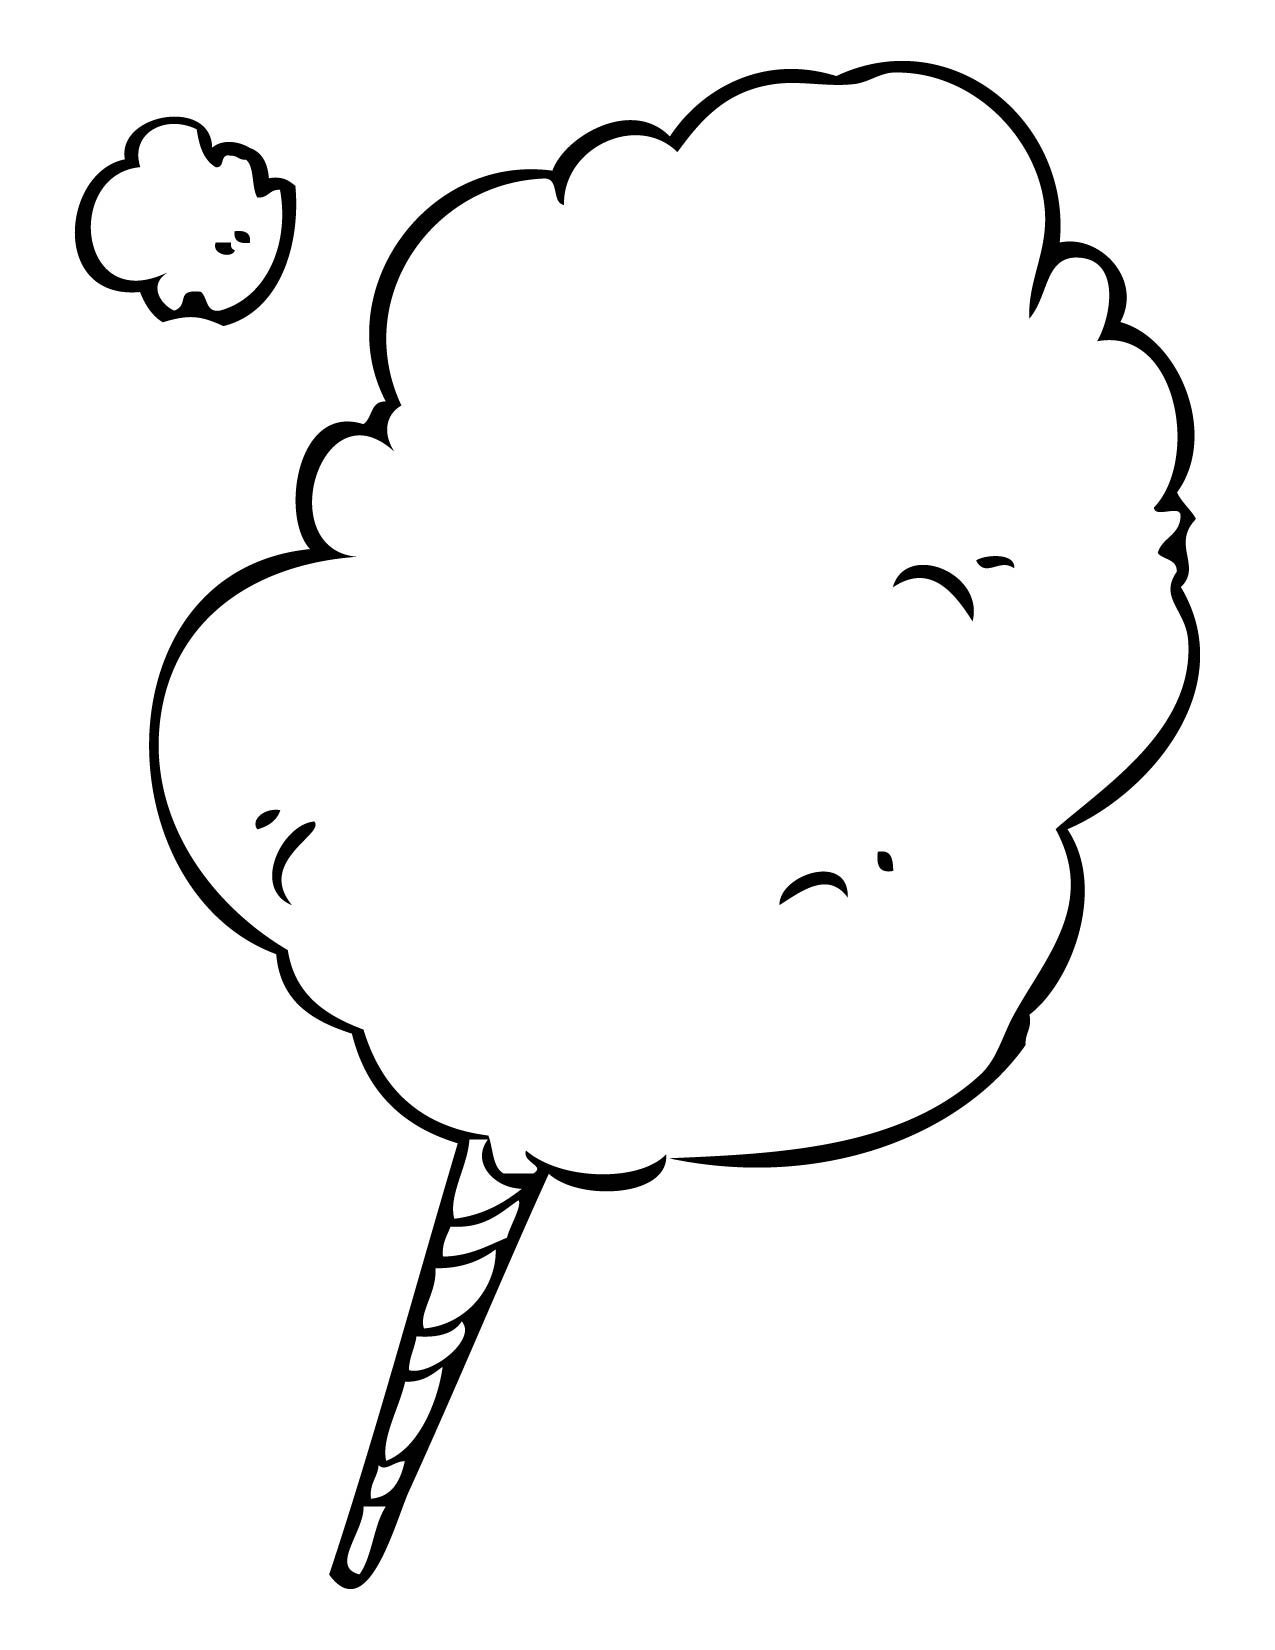 Cotton Candy Coloring Pages Coloring Home Cotton Coloring Sheet